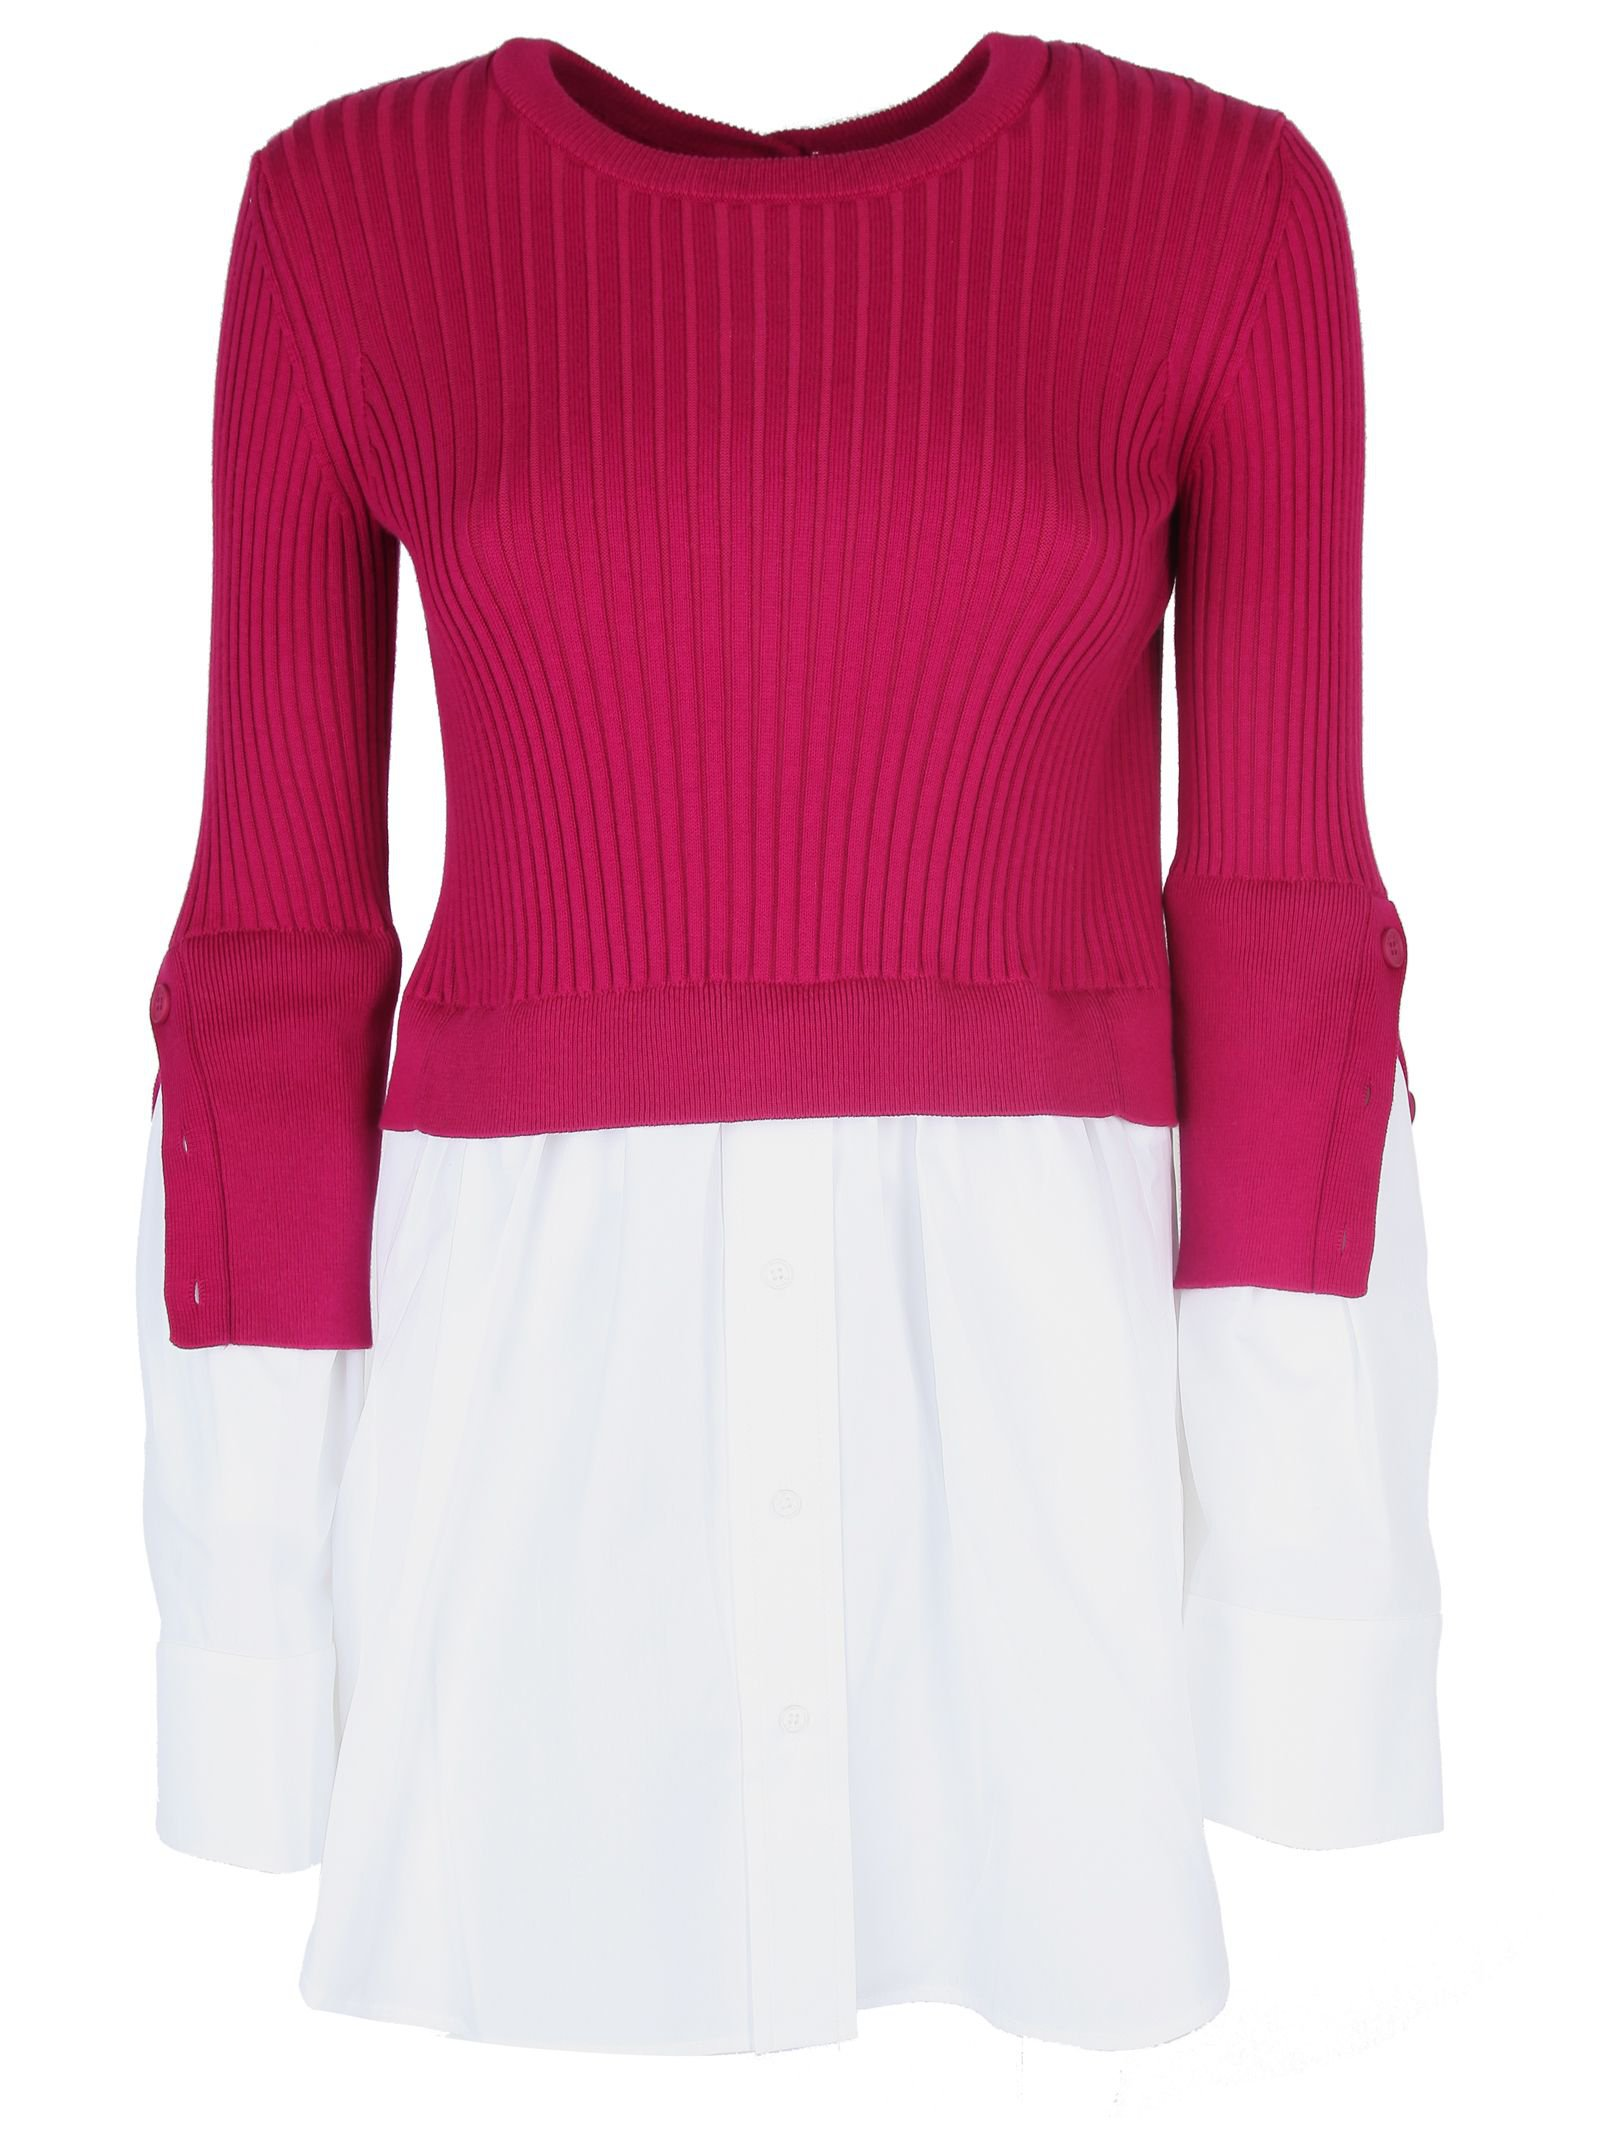 Kenzo Layered Knitted Blouse